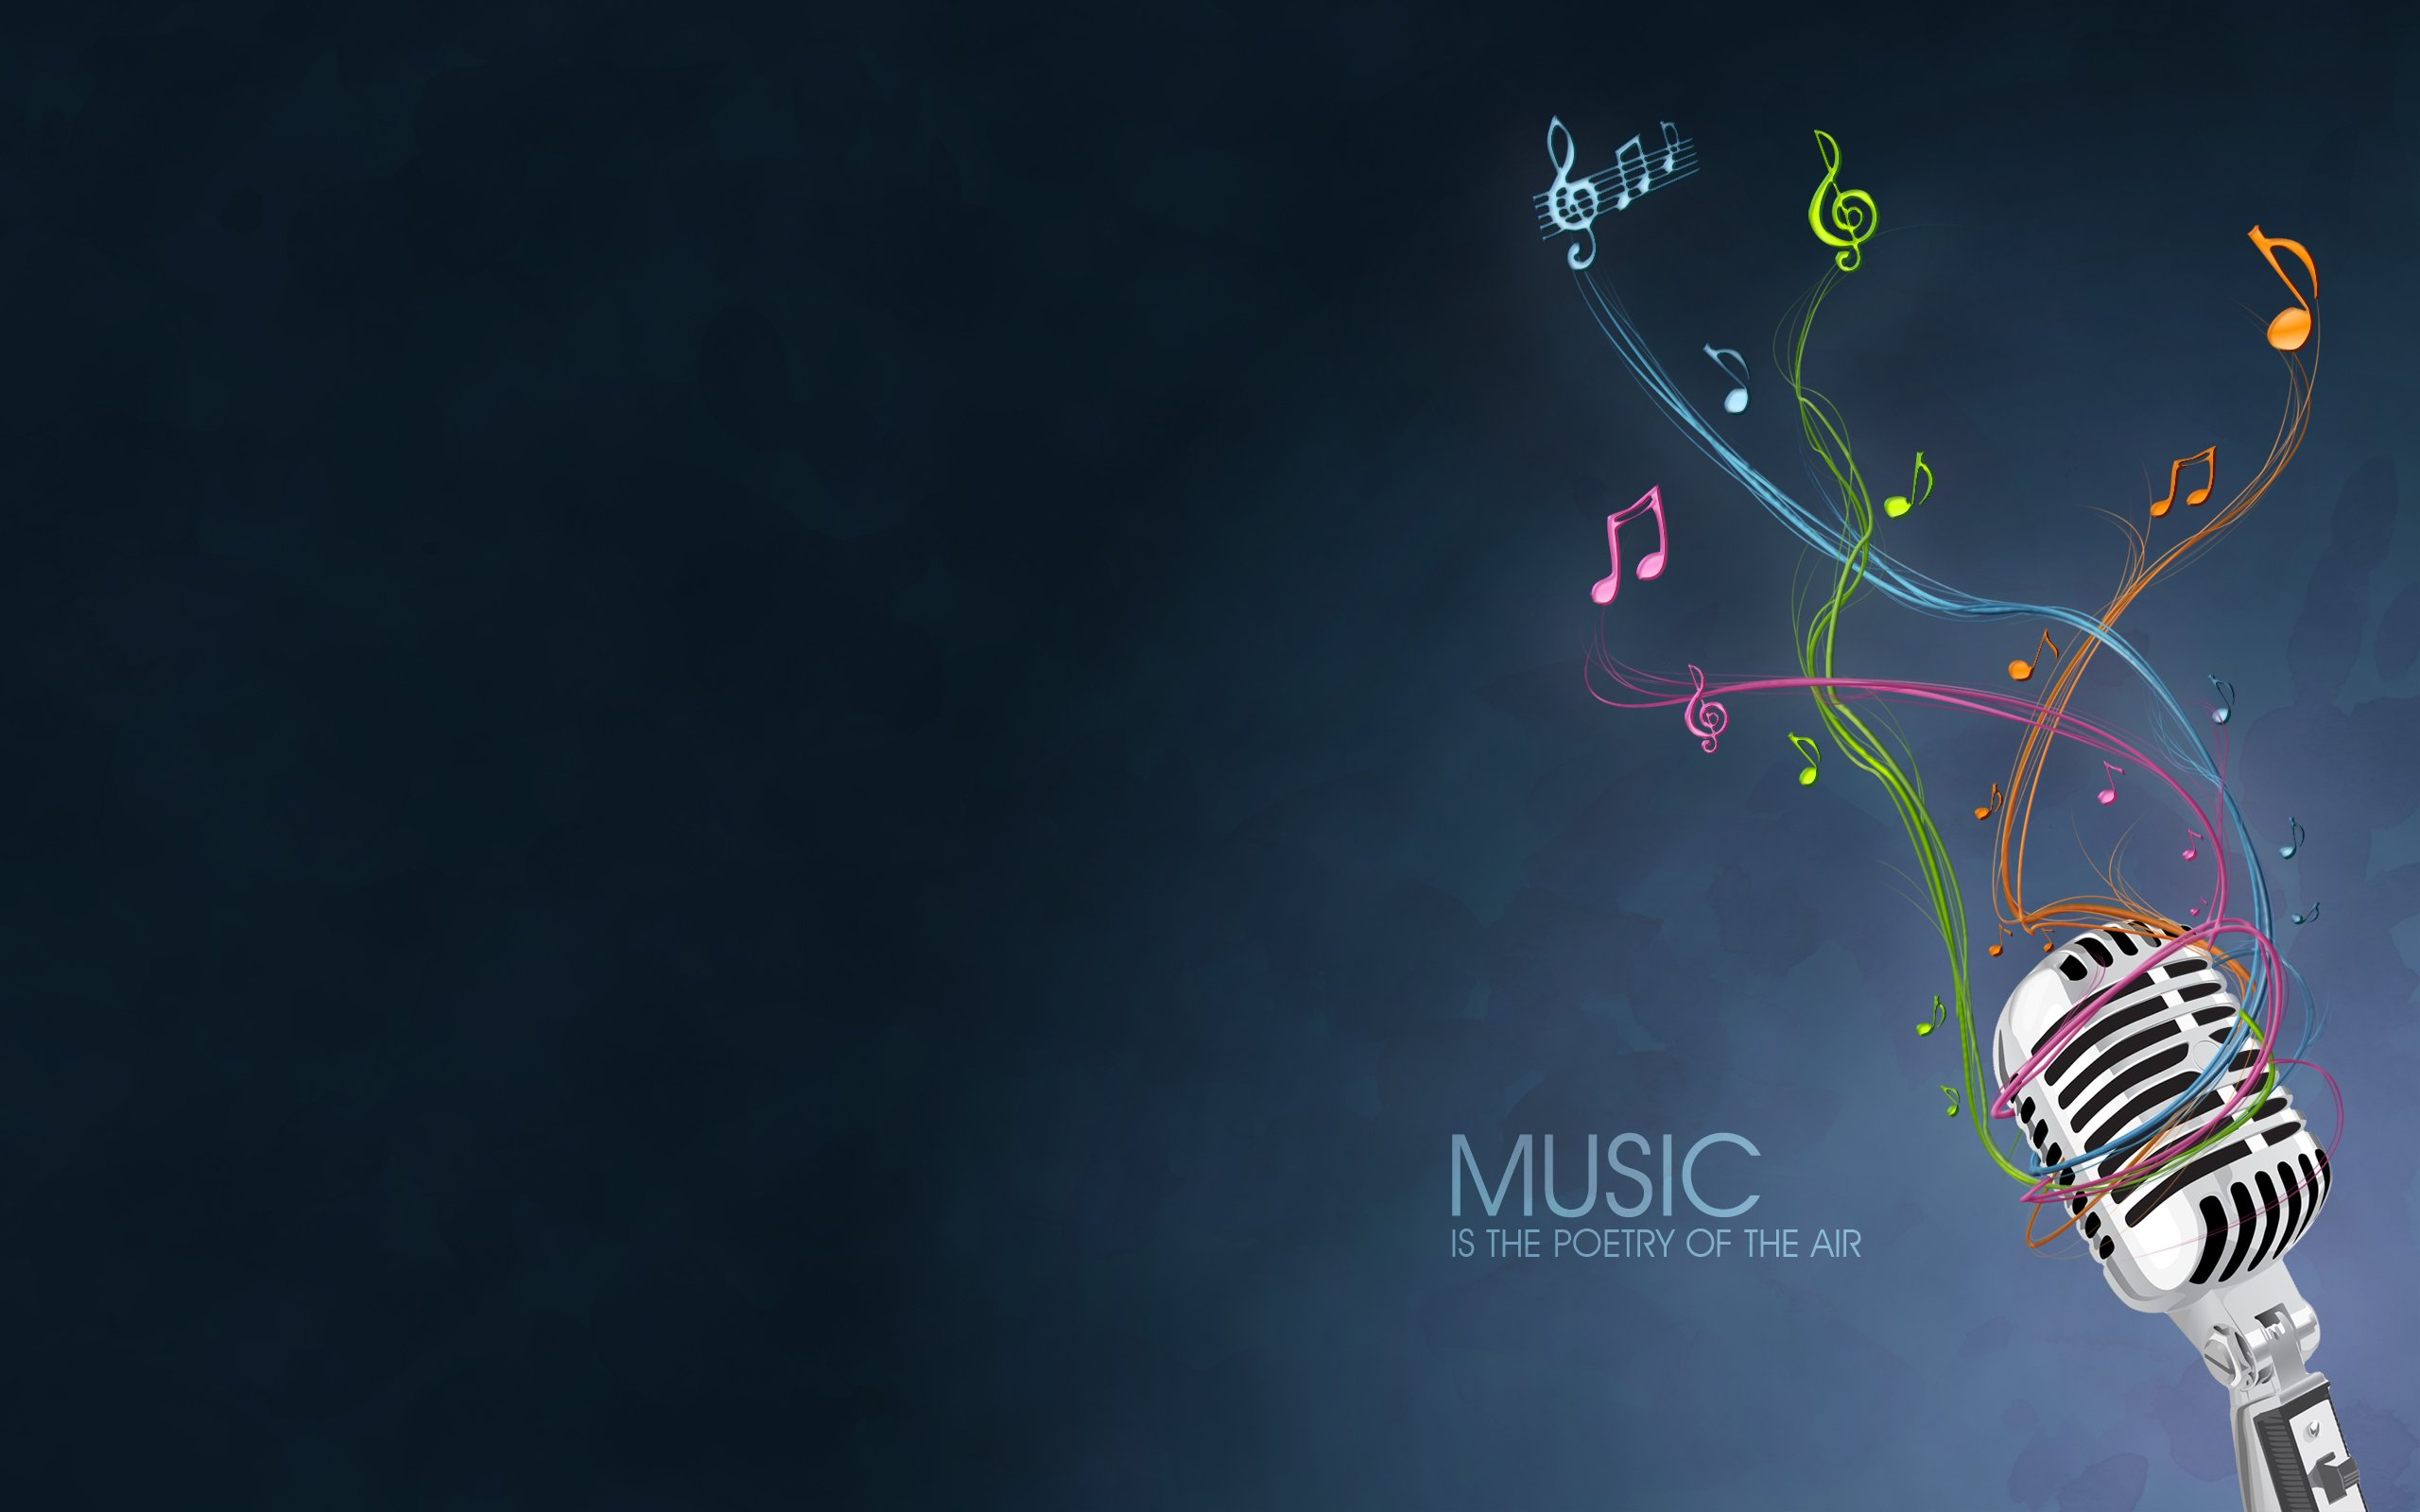 music-wallpaper-24.jpg